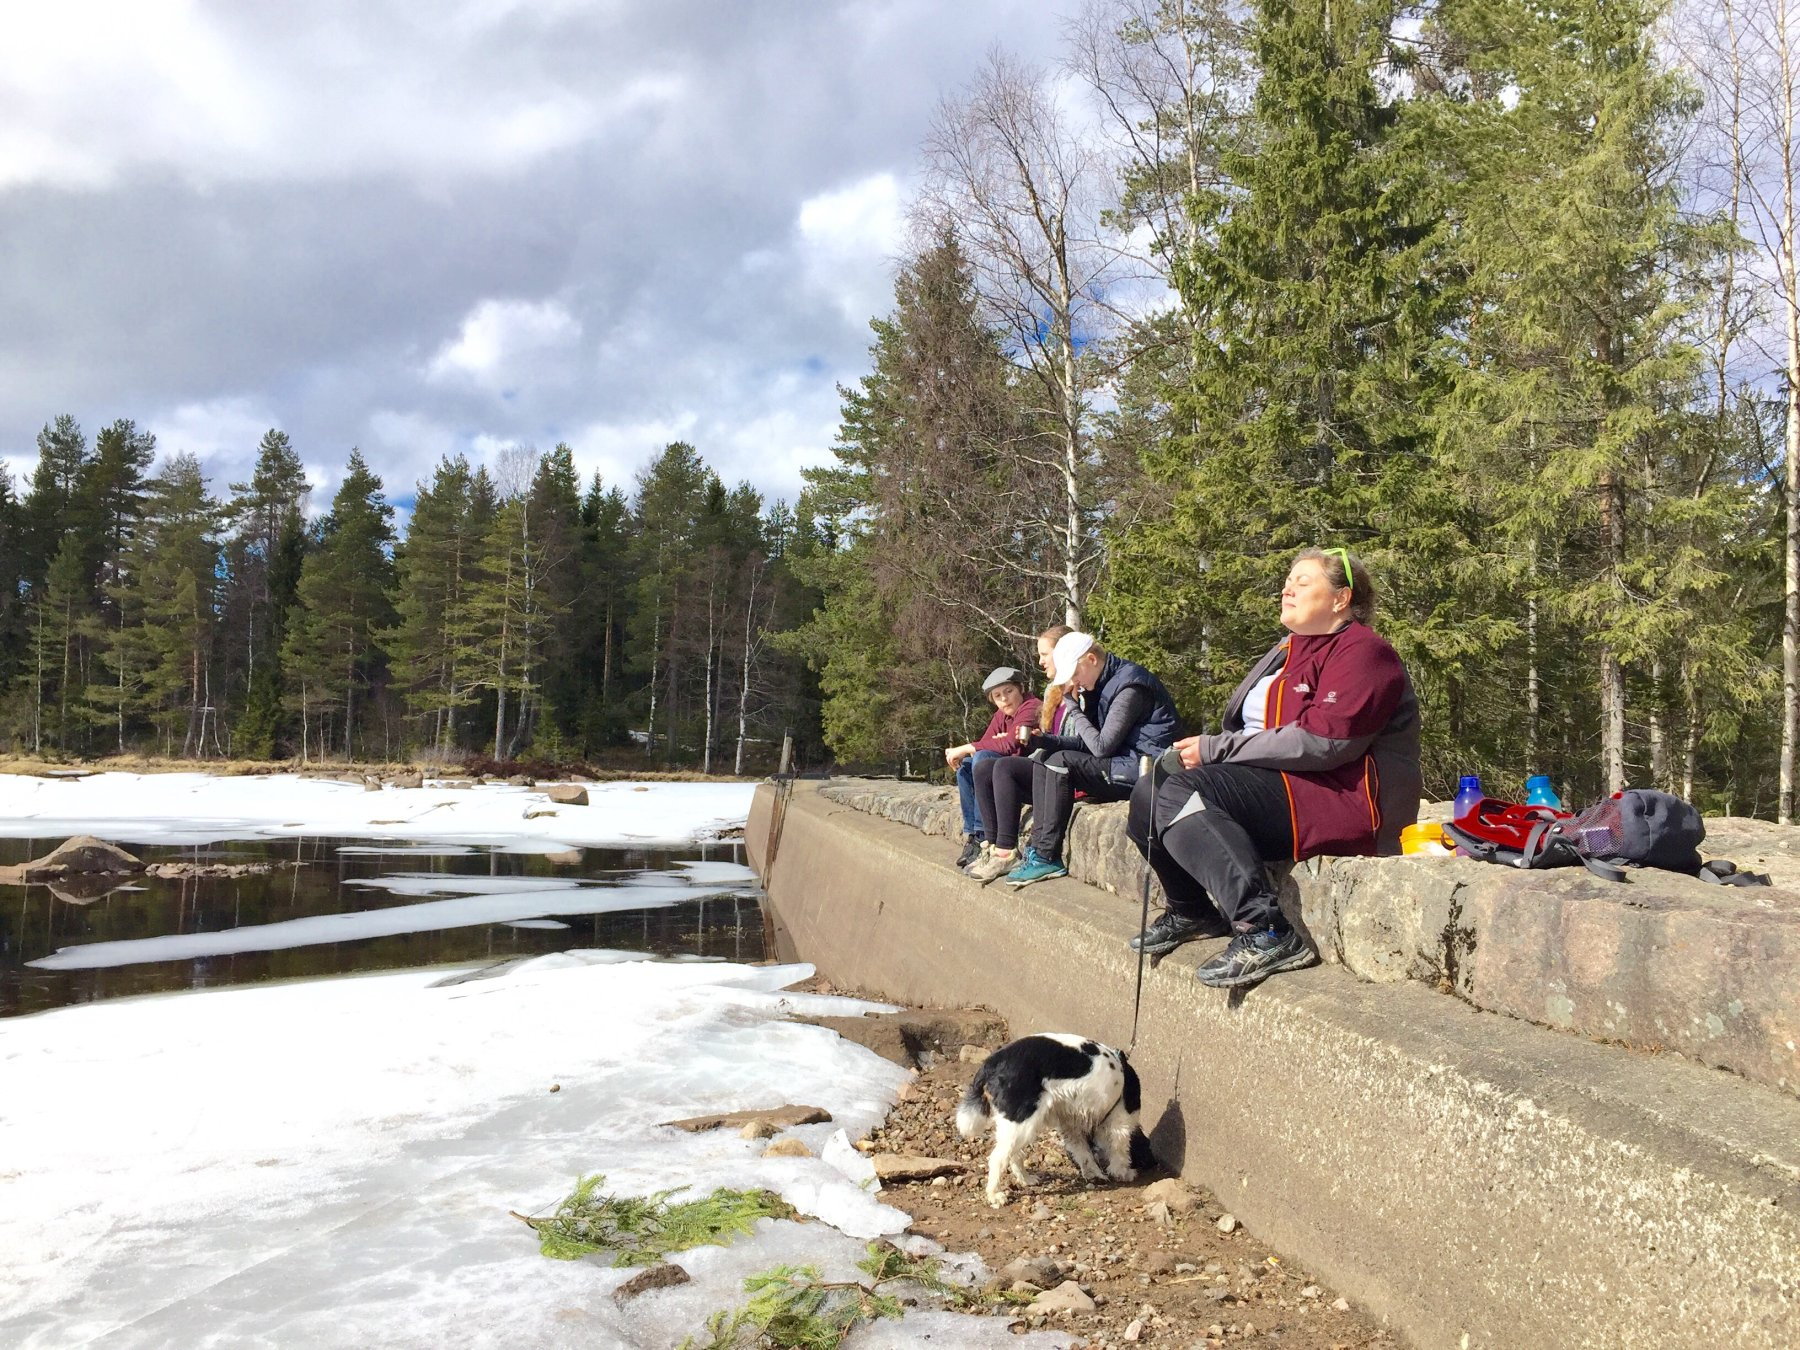 Solpause ved Langvann